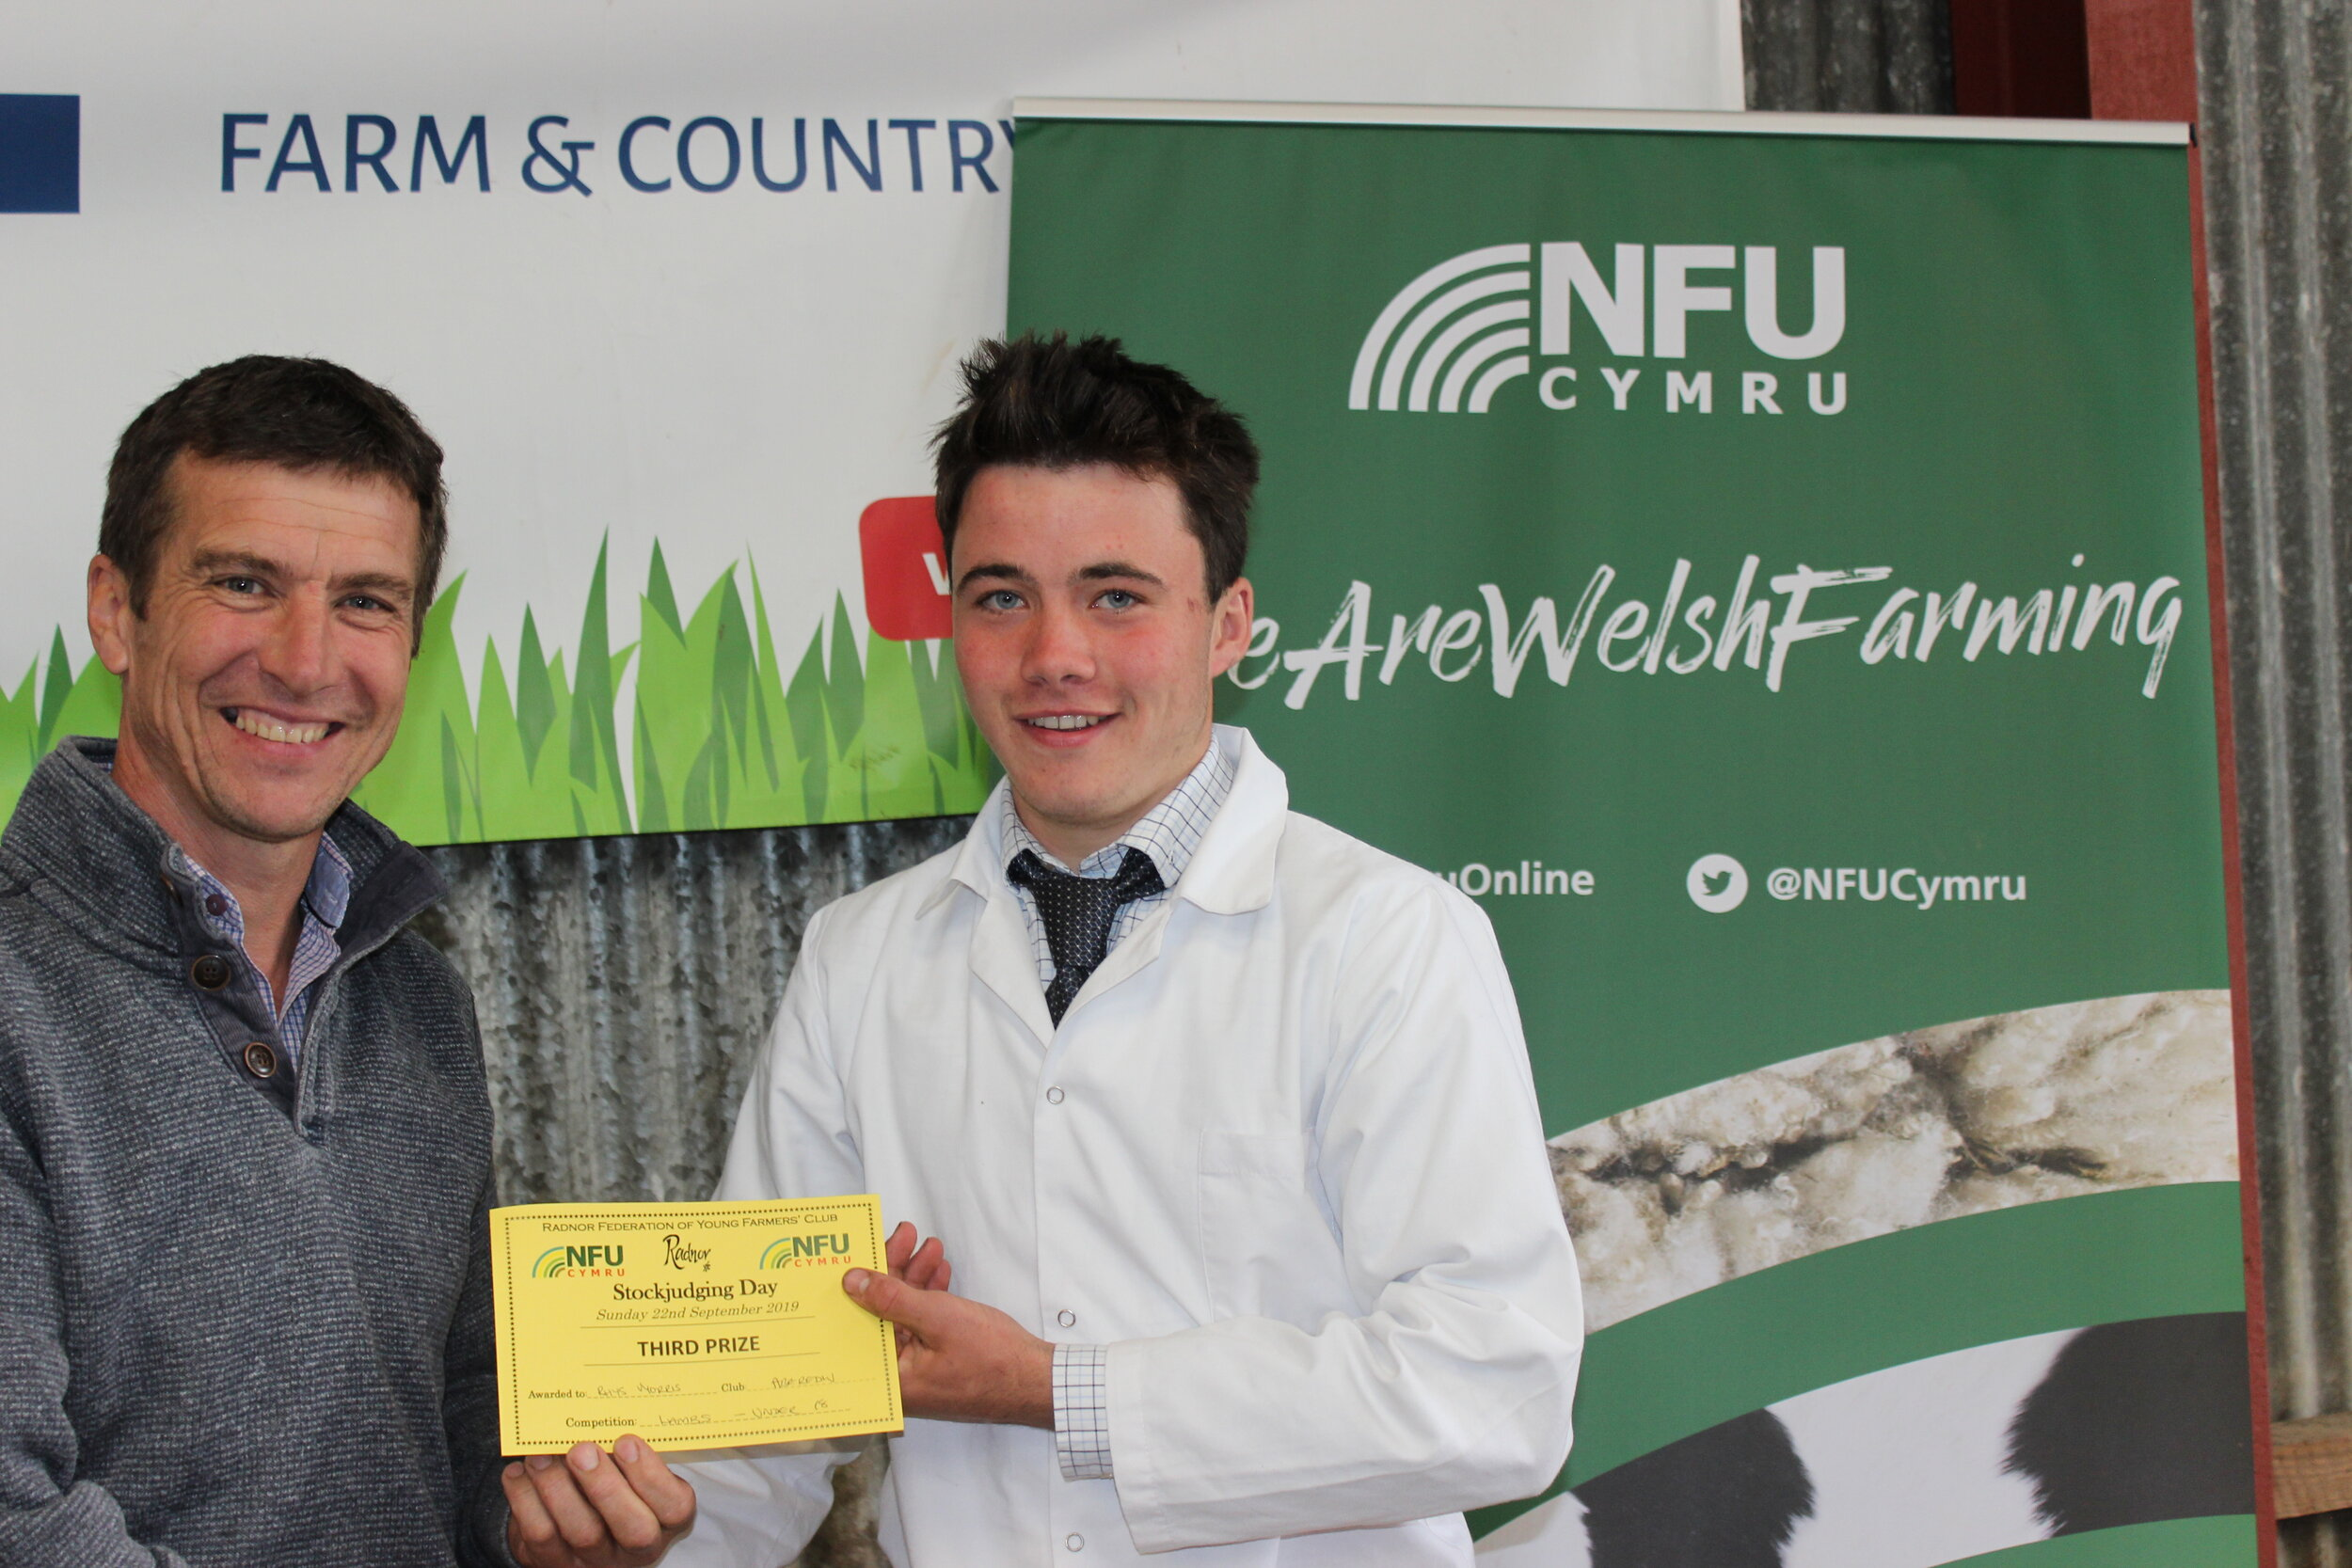 Rhys Morris, Aberedw YFC - joint 3rd place in the Junior Lamb with Mark Waston.